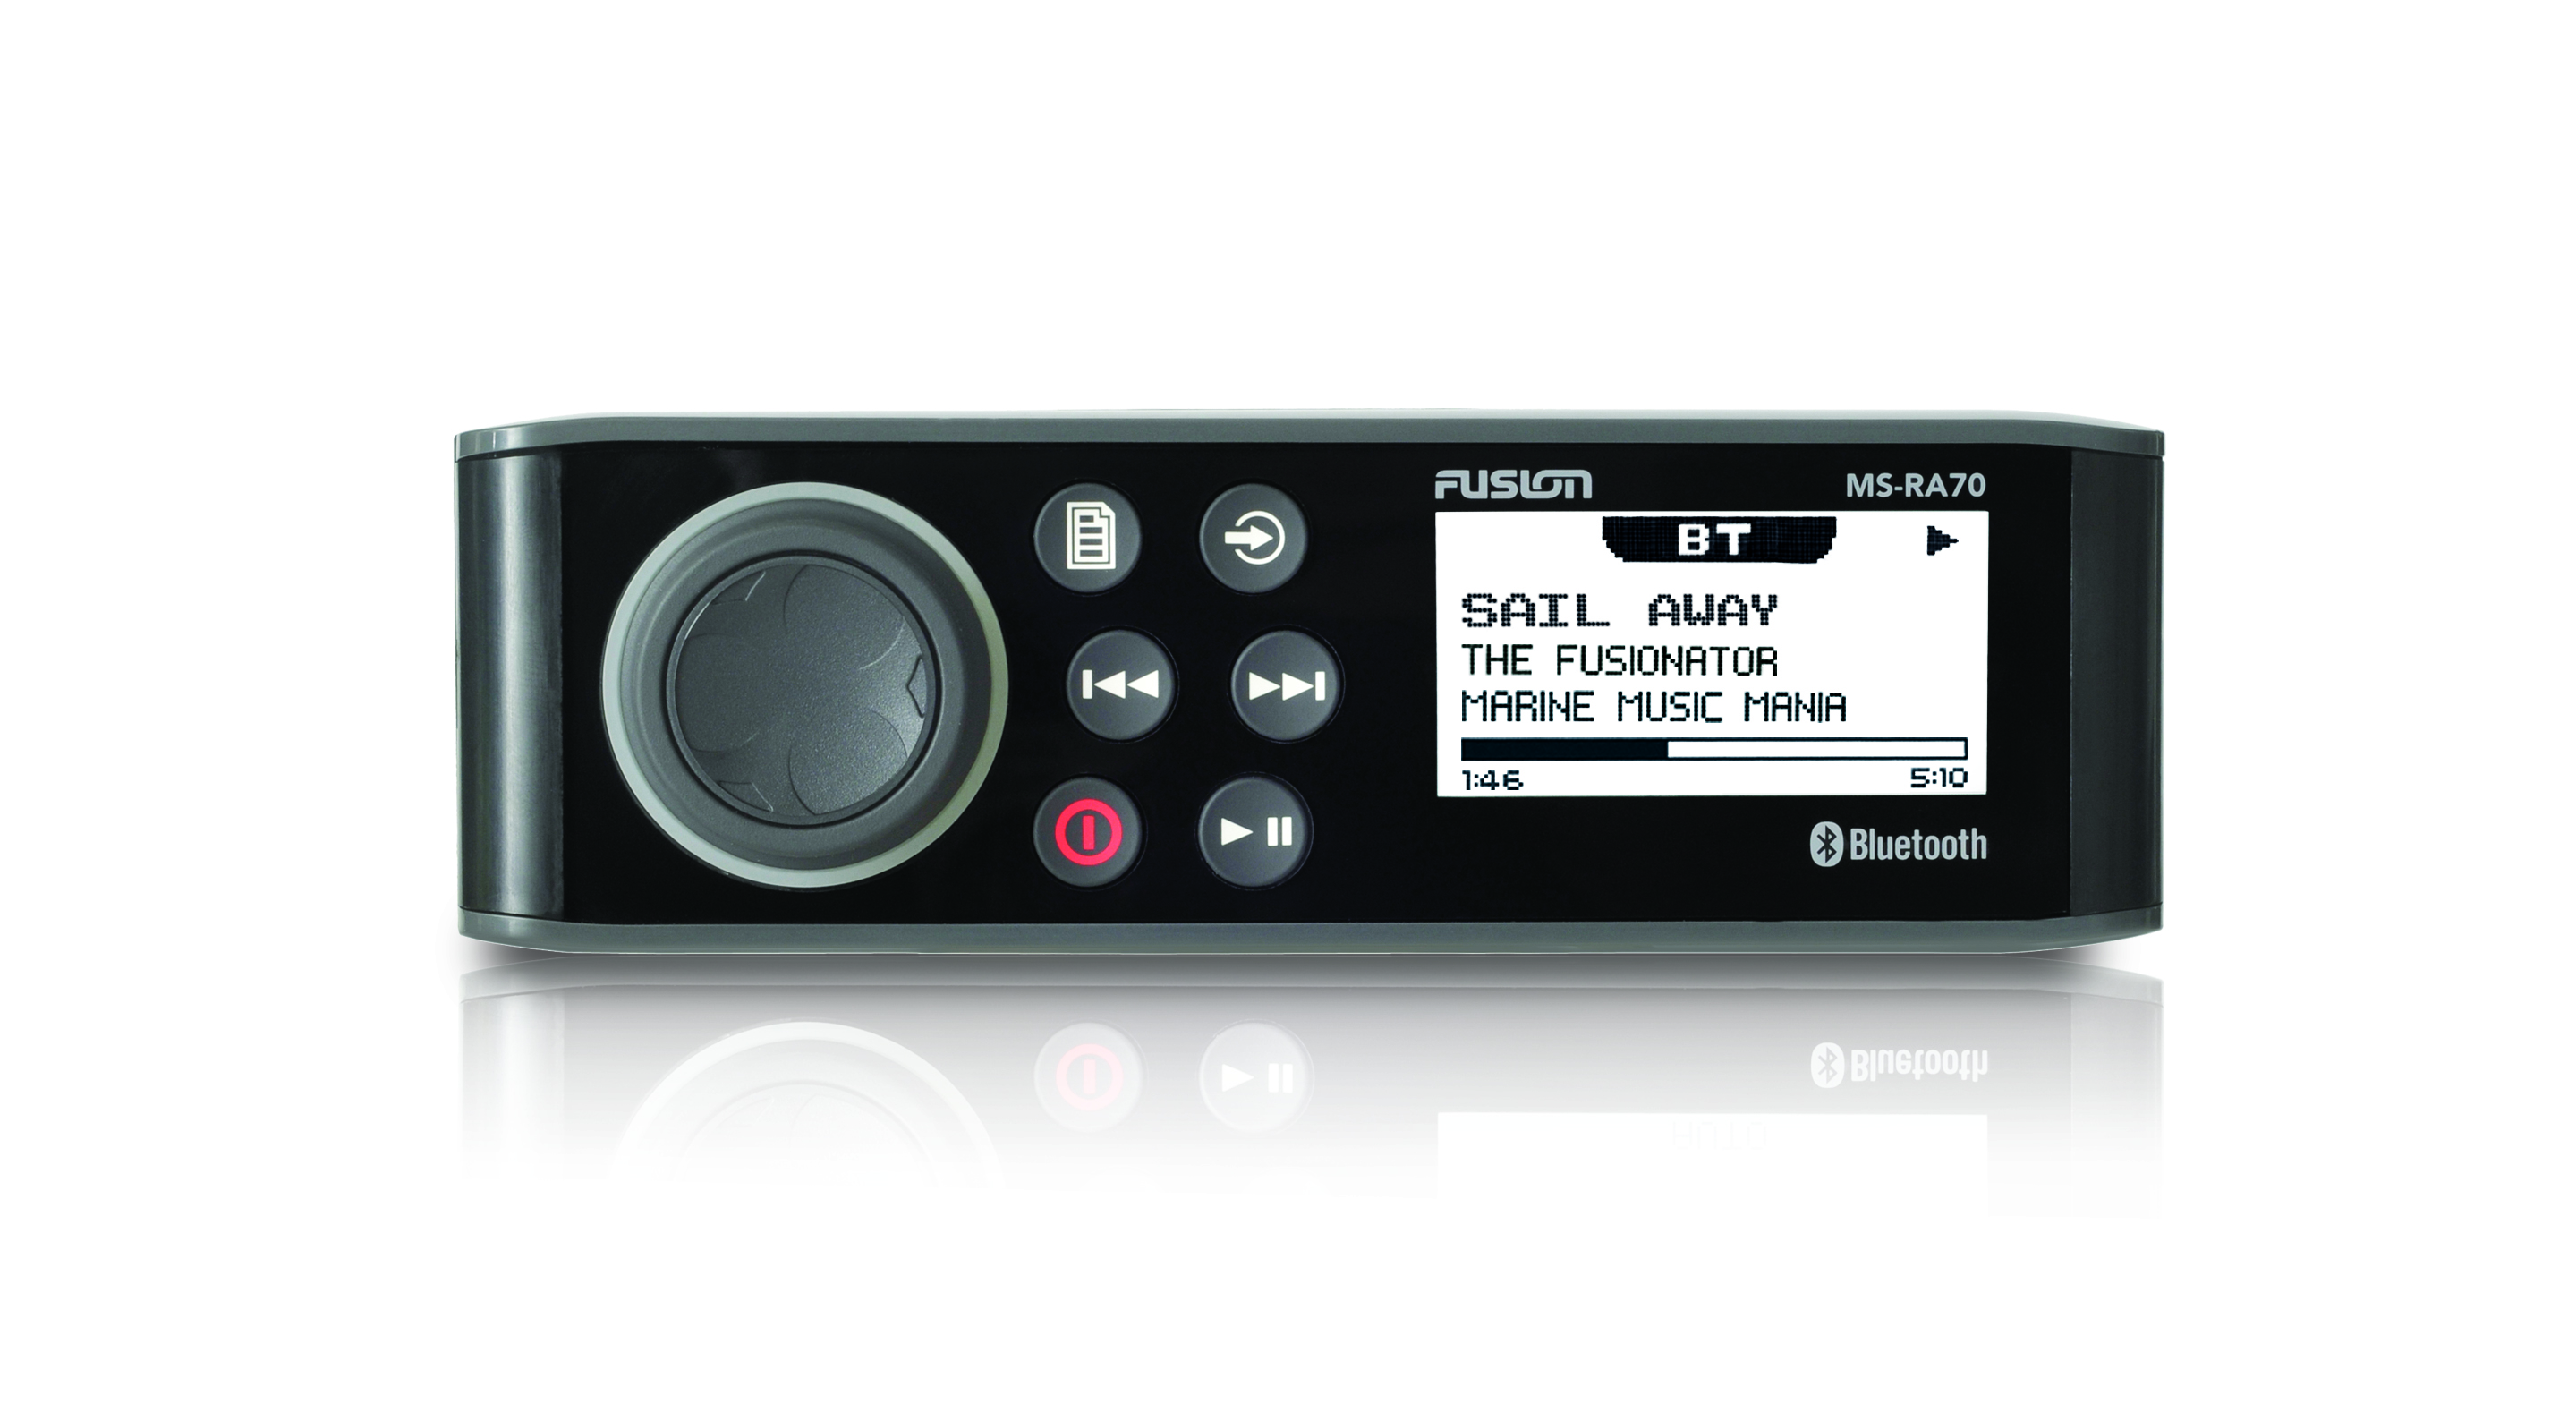 fusion ms ra70 stereo unit front view